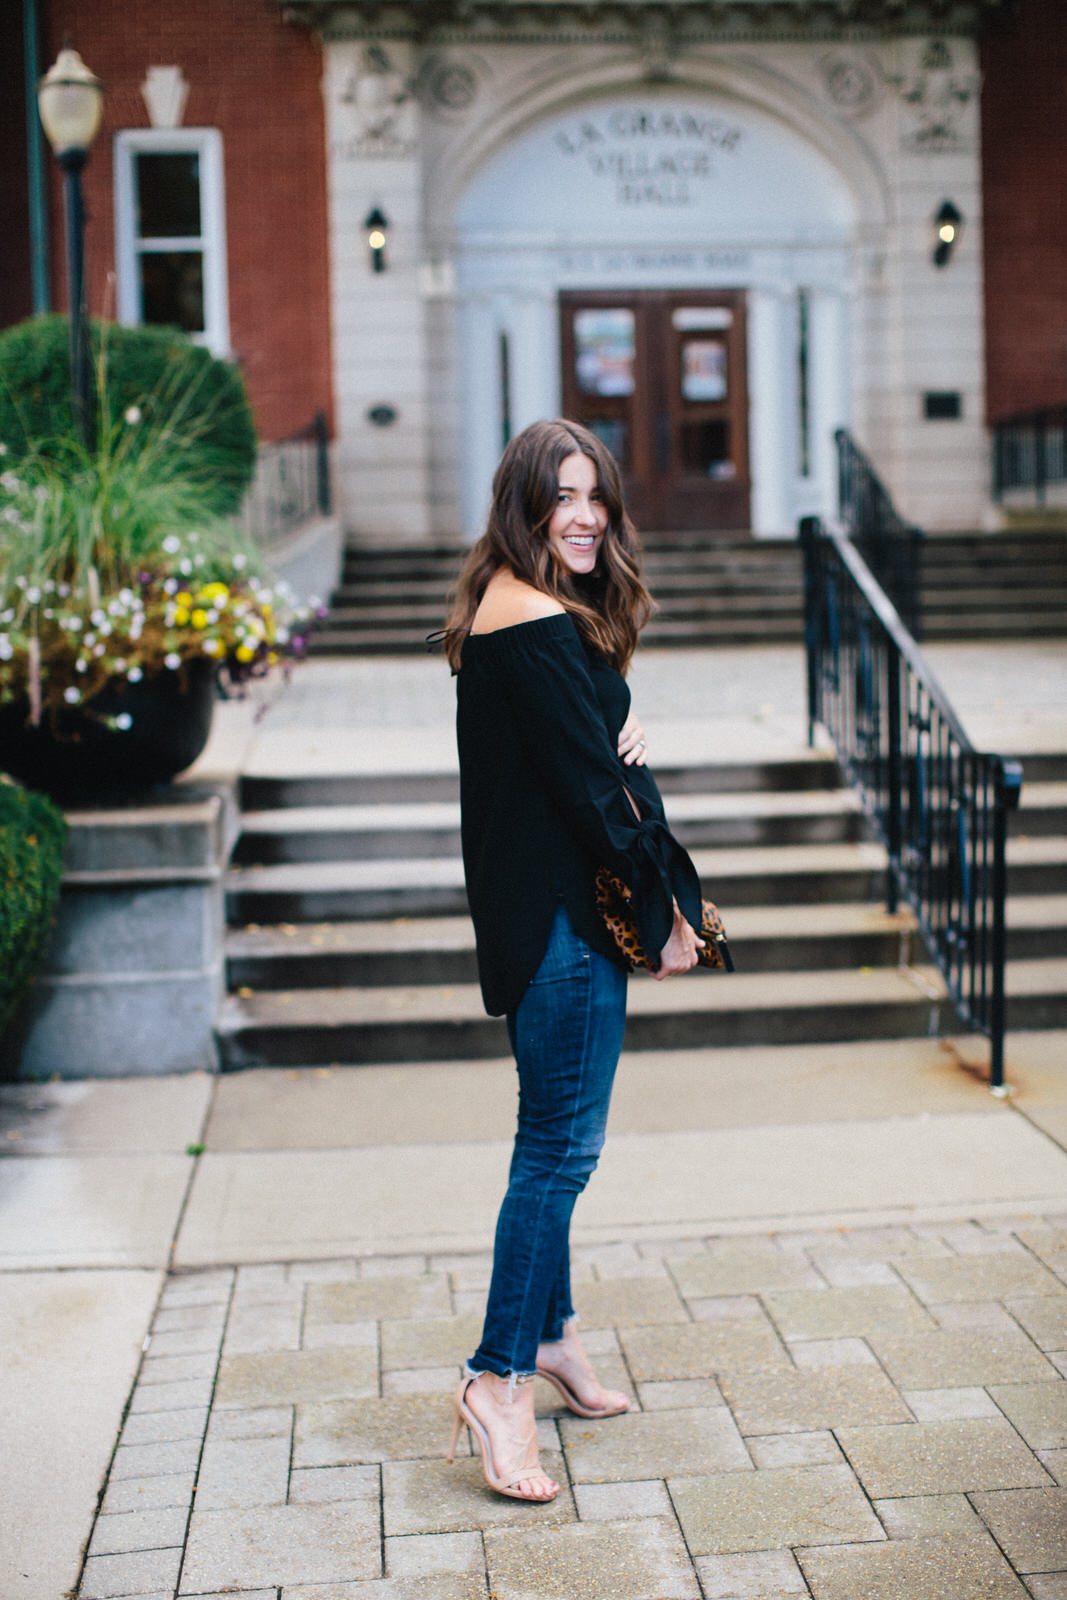 Date night outfit ideas to make you feel your best.